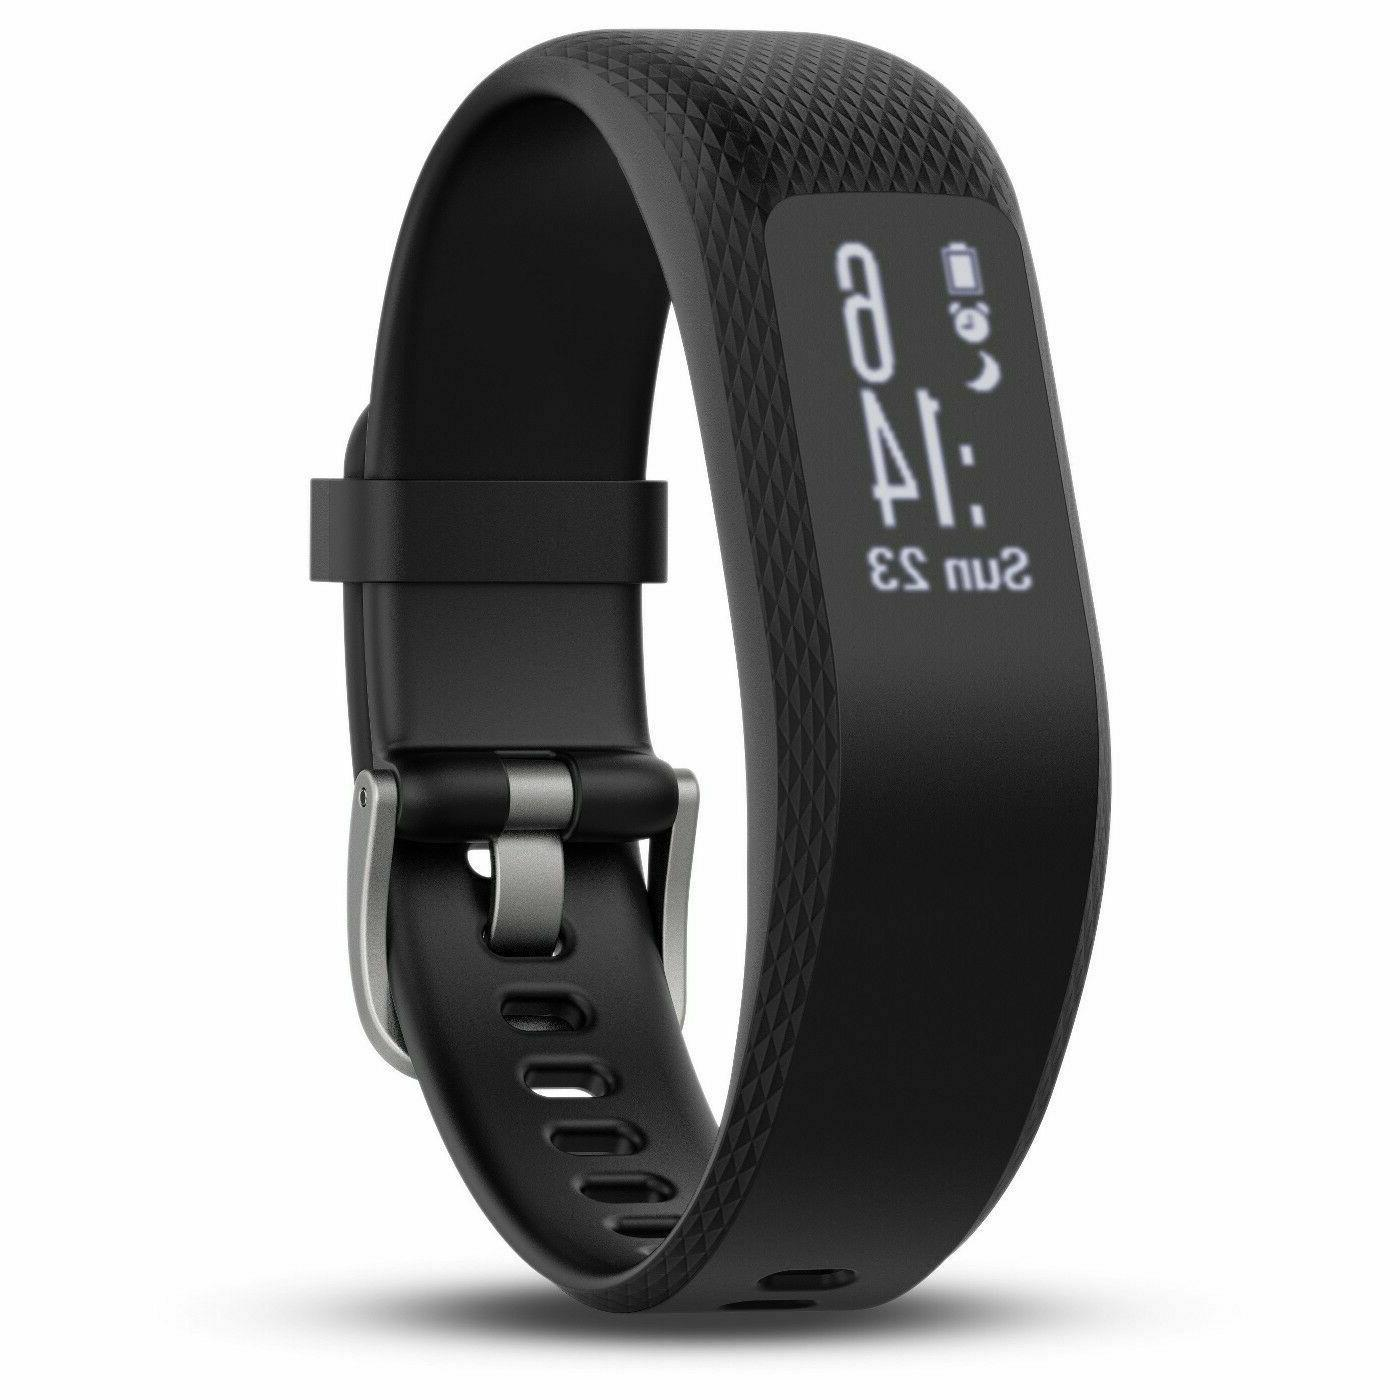 brand new vivosmart 3 smart activity tracker